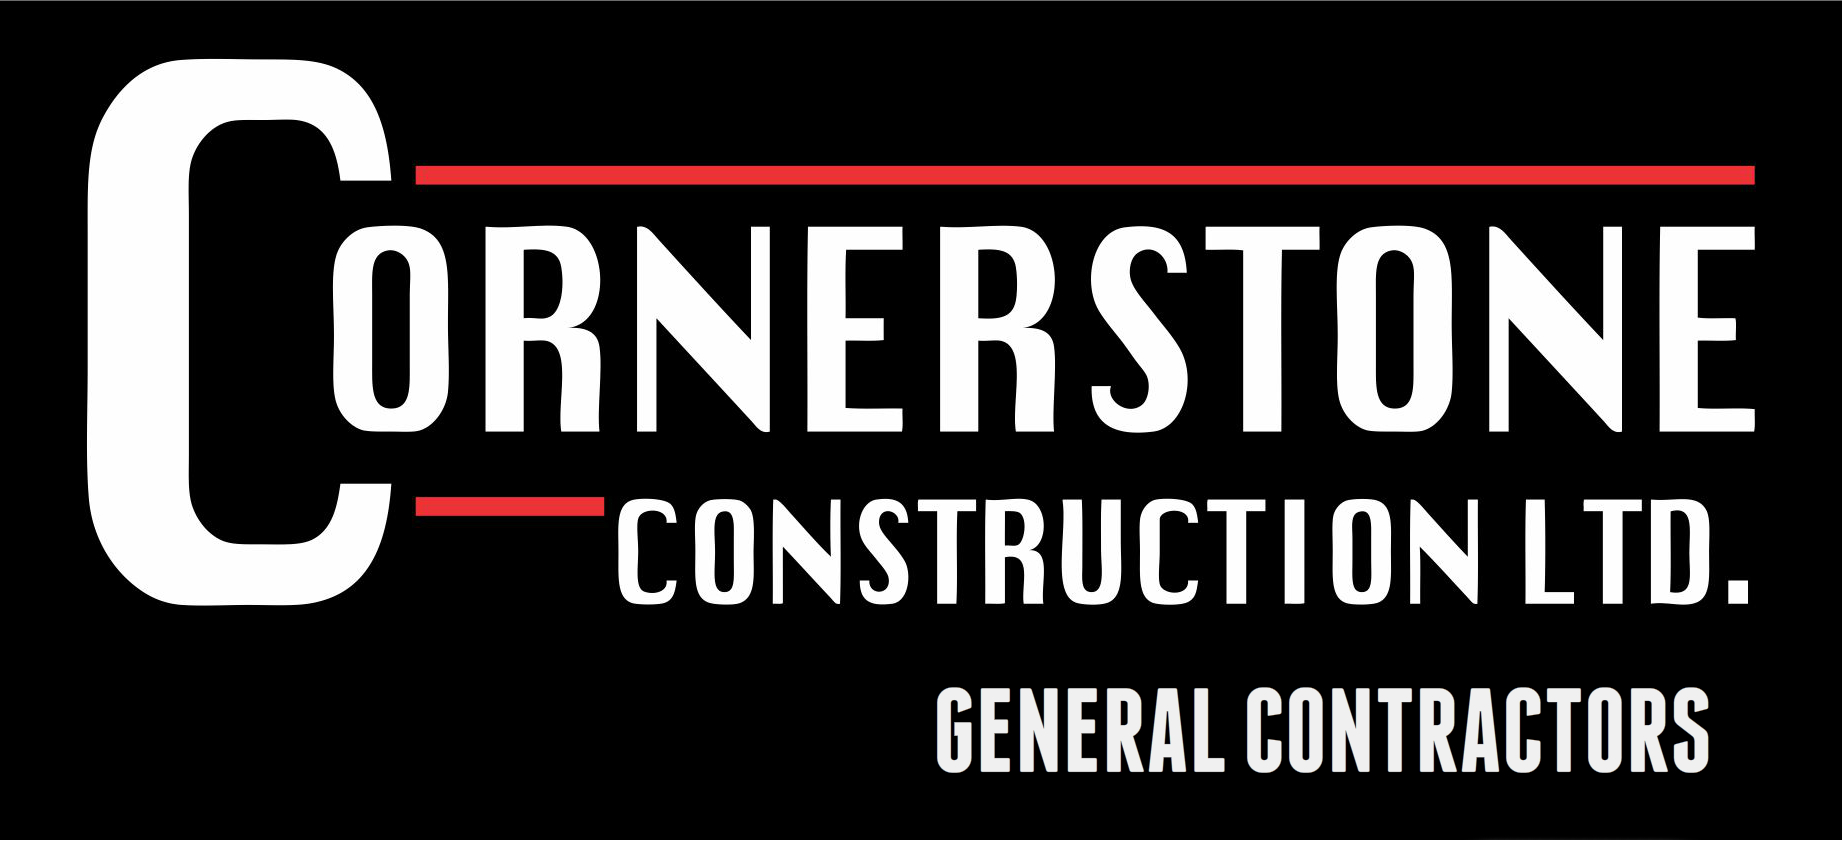 Cornerstone Construction General Contractors